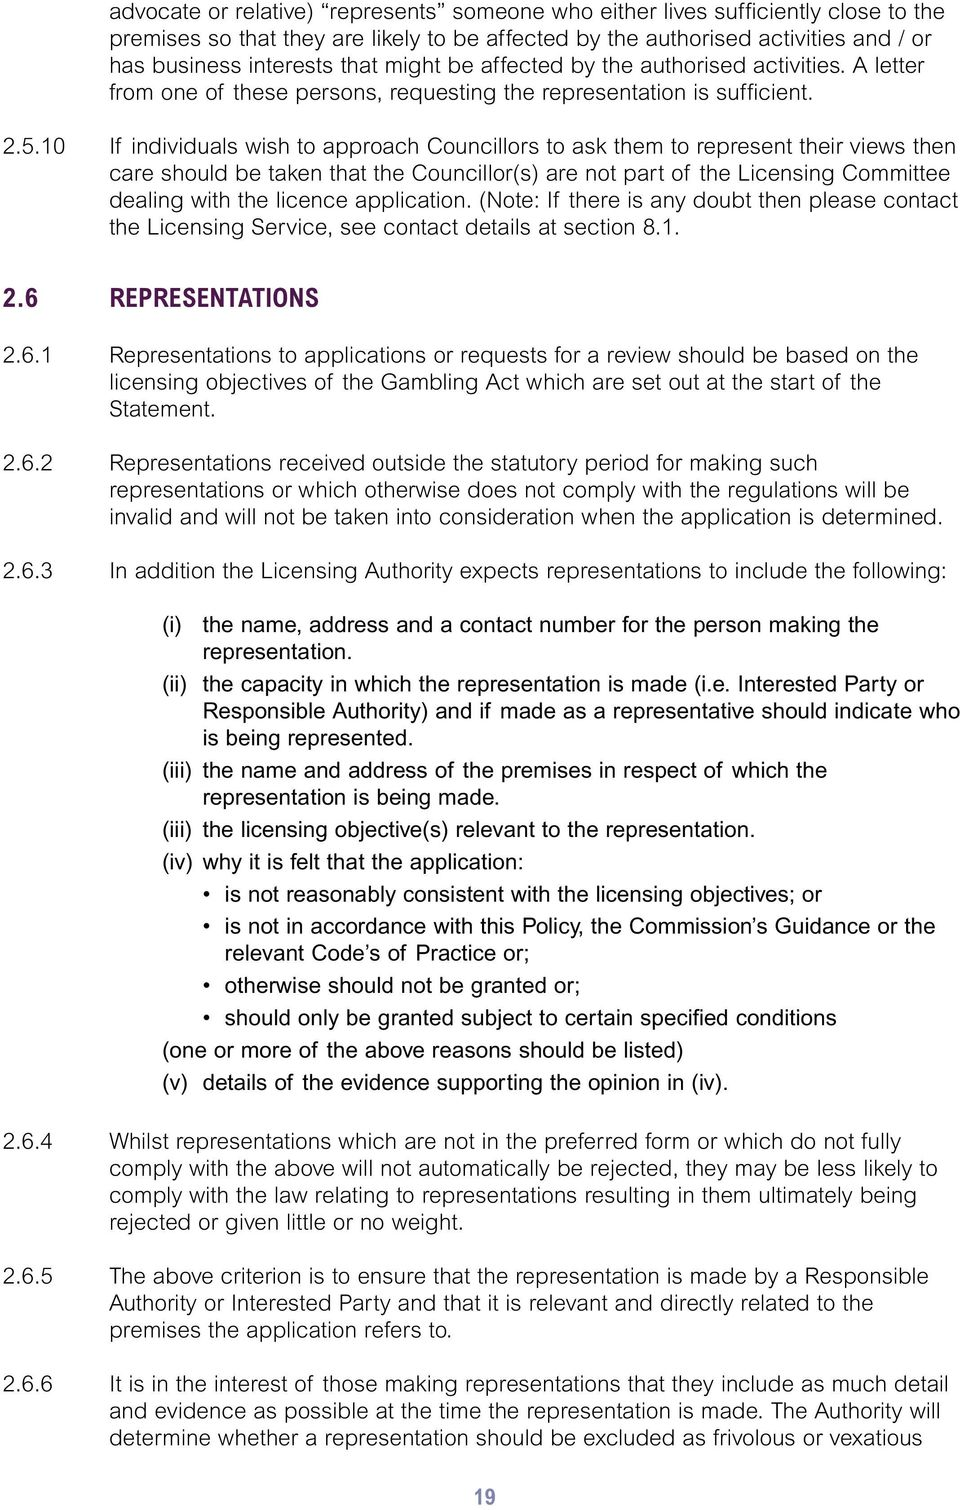 10 If individuals wish to approach Councillors to ask them to represent their views then care should be taken that the Councillor(s) are not part of the Licensing Committee dealing with the licence